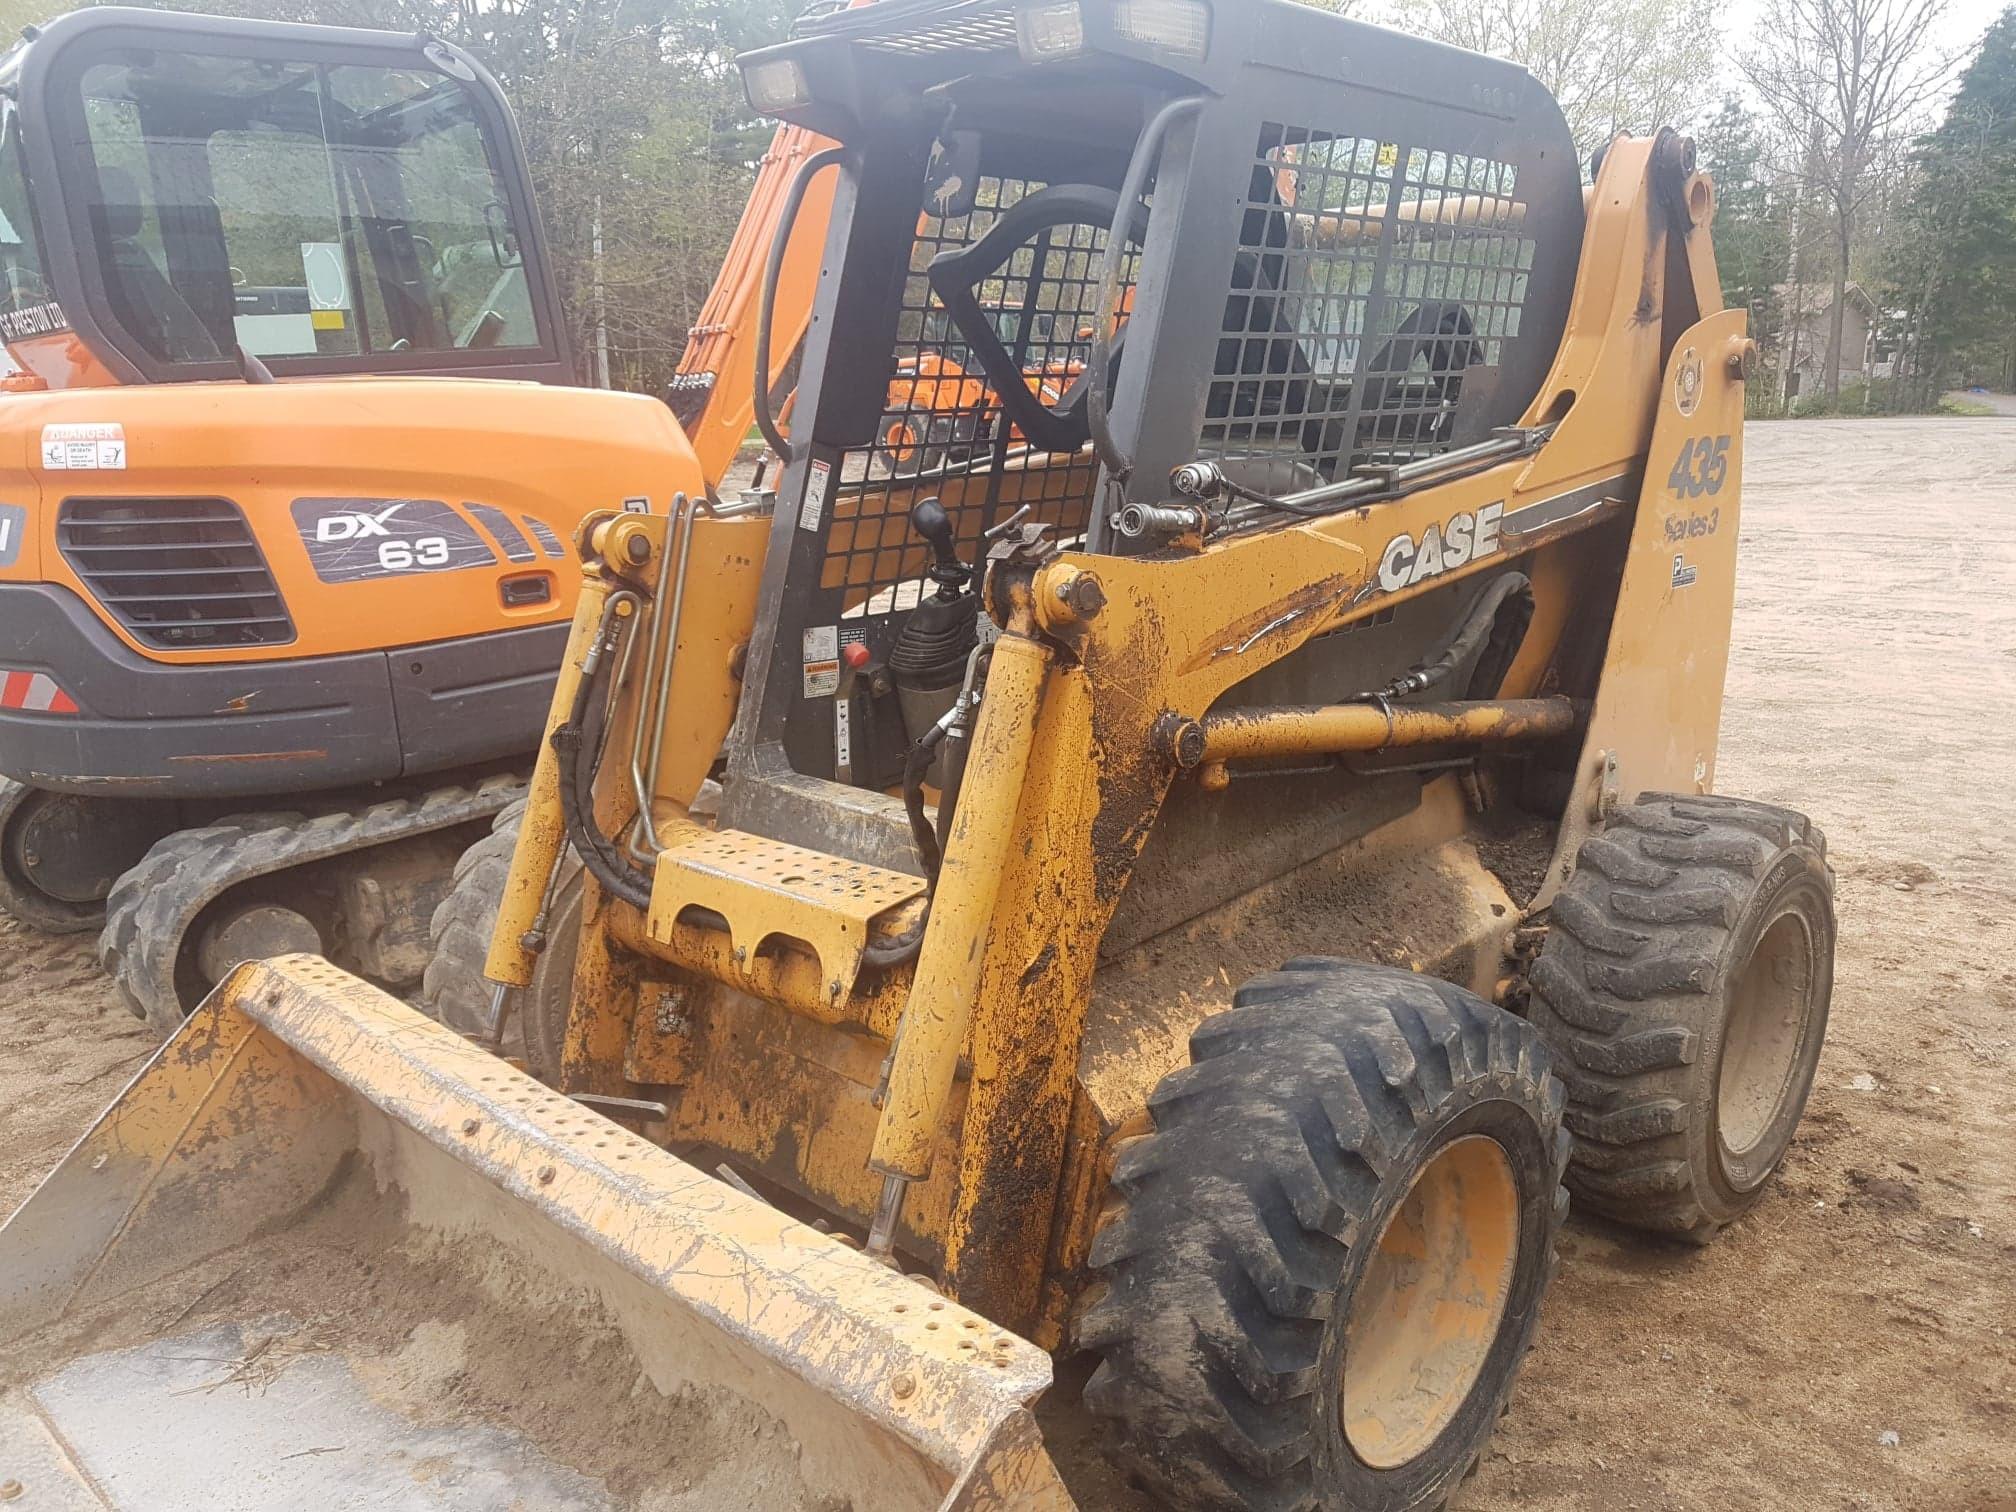 Construction Equipment Sales & Rentals Sundridge, Ontario: Loaders